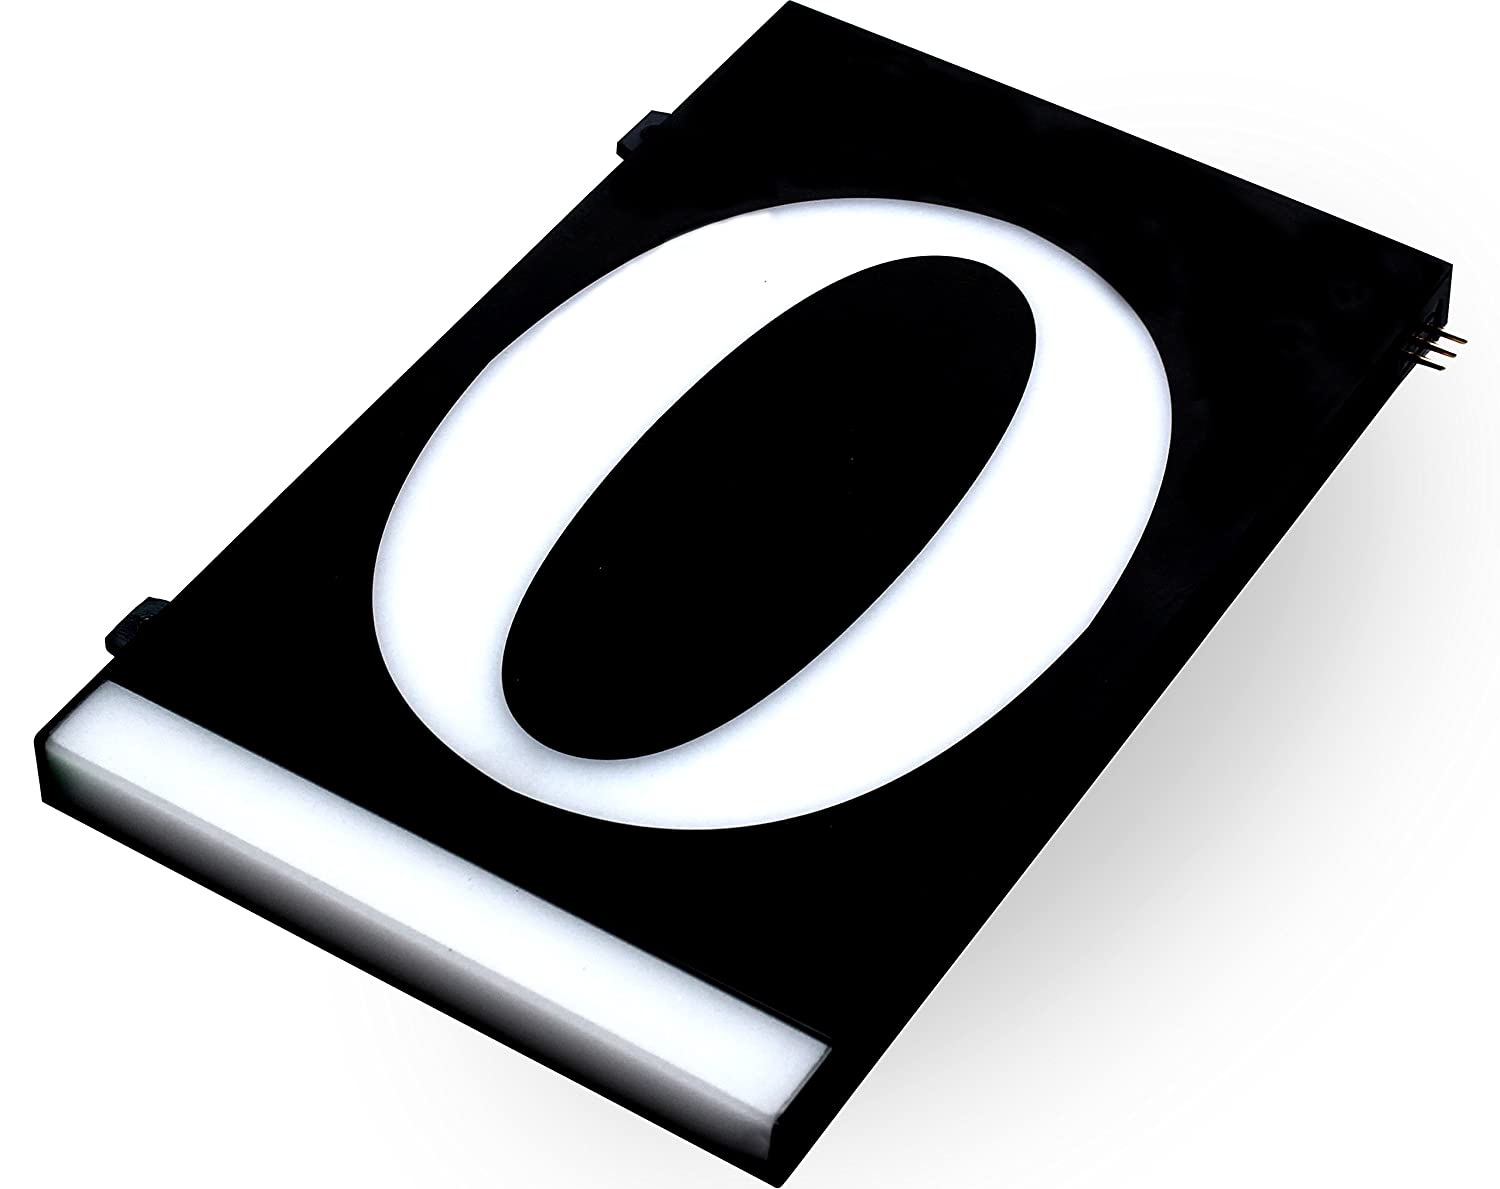 HOMIDEA Backlit LED House Number and Sound Activated Overhead Light. Personalized Large Black and White Modern Address Number Sign/Custom Street Number Plaque. (9) Homidea Direct Sales Inc.